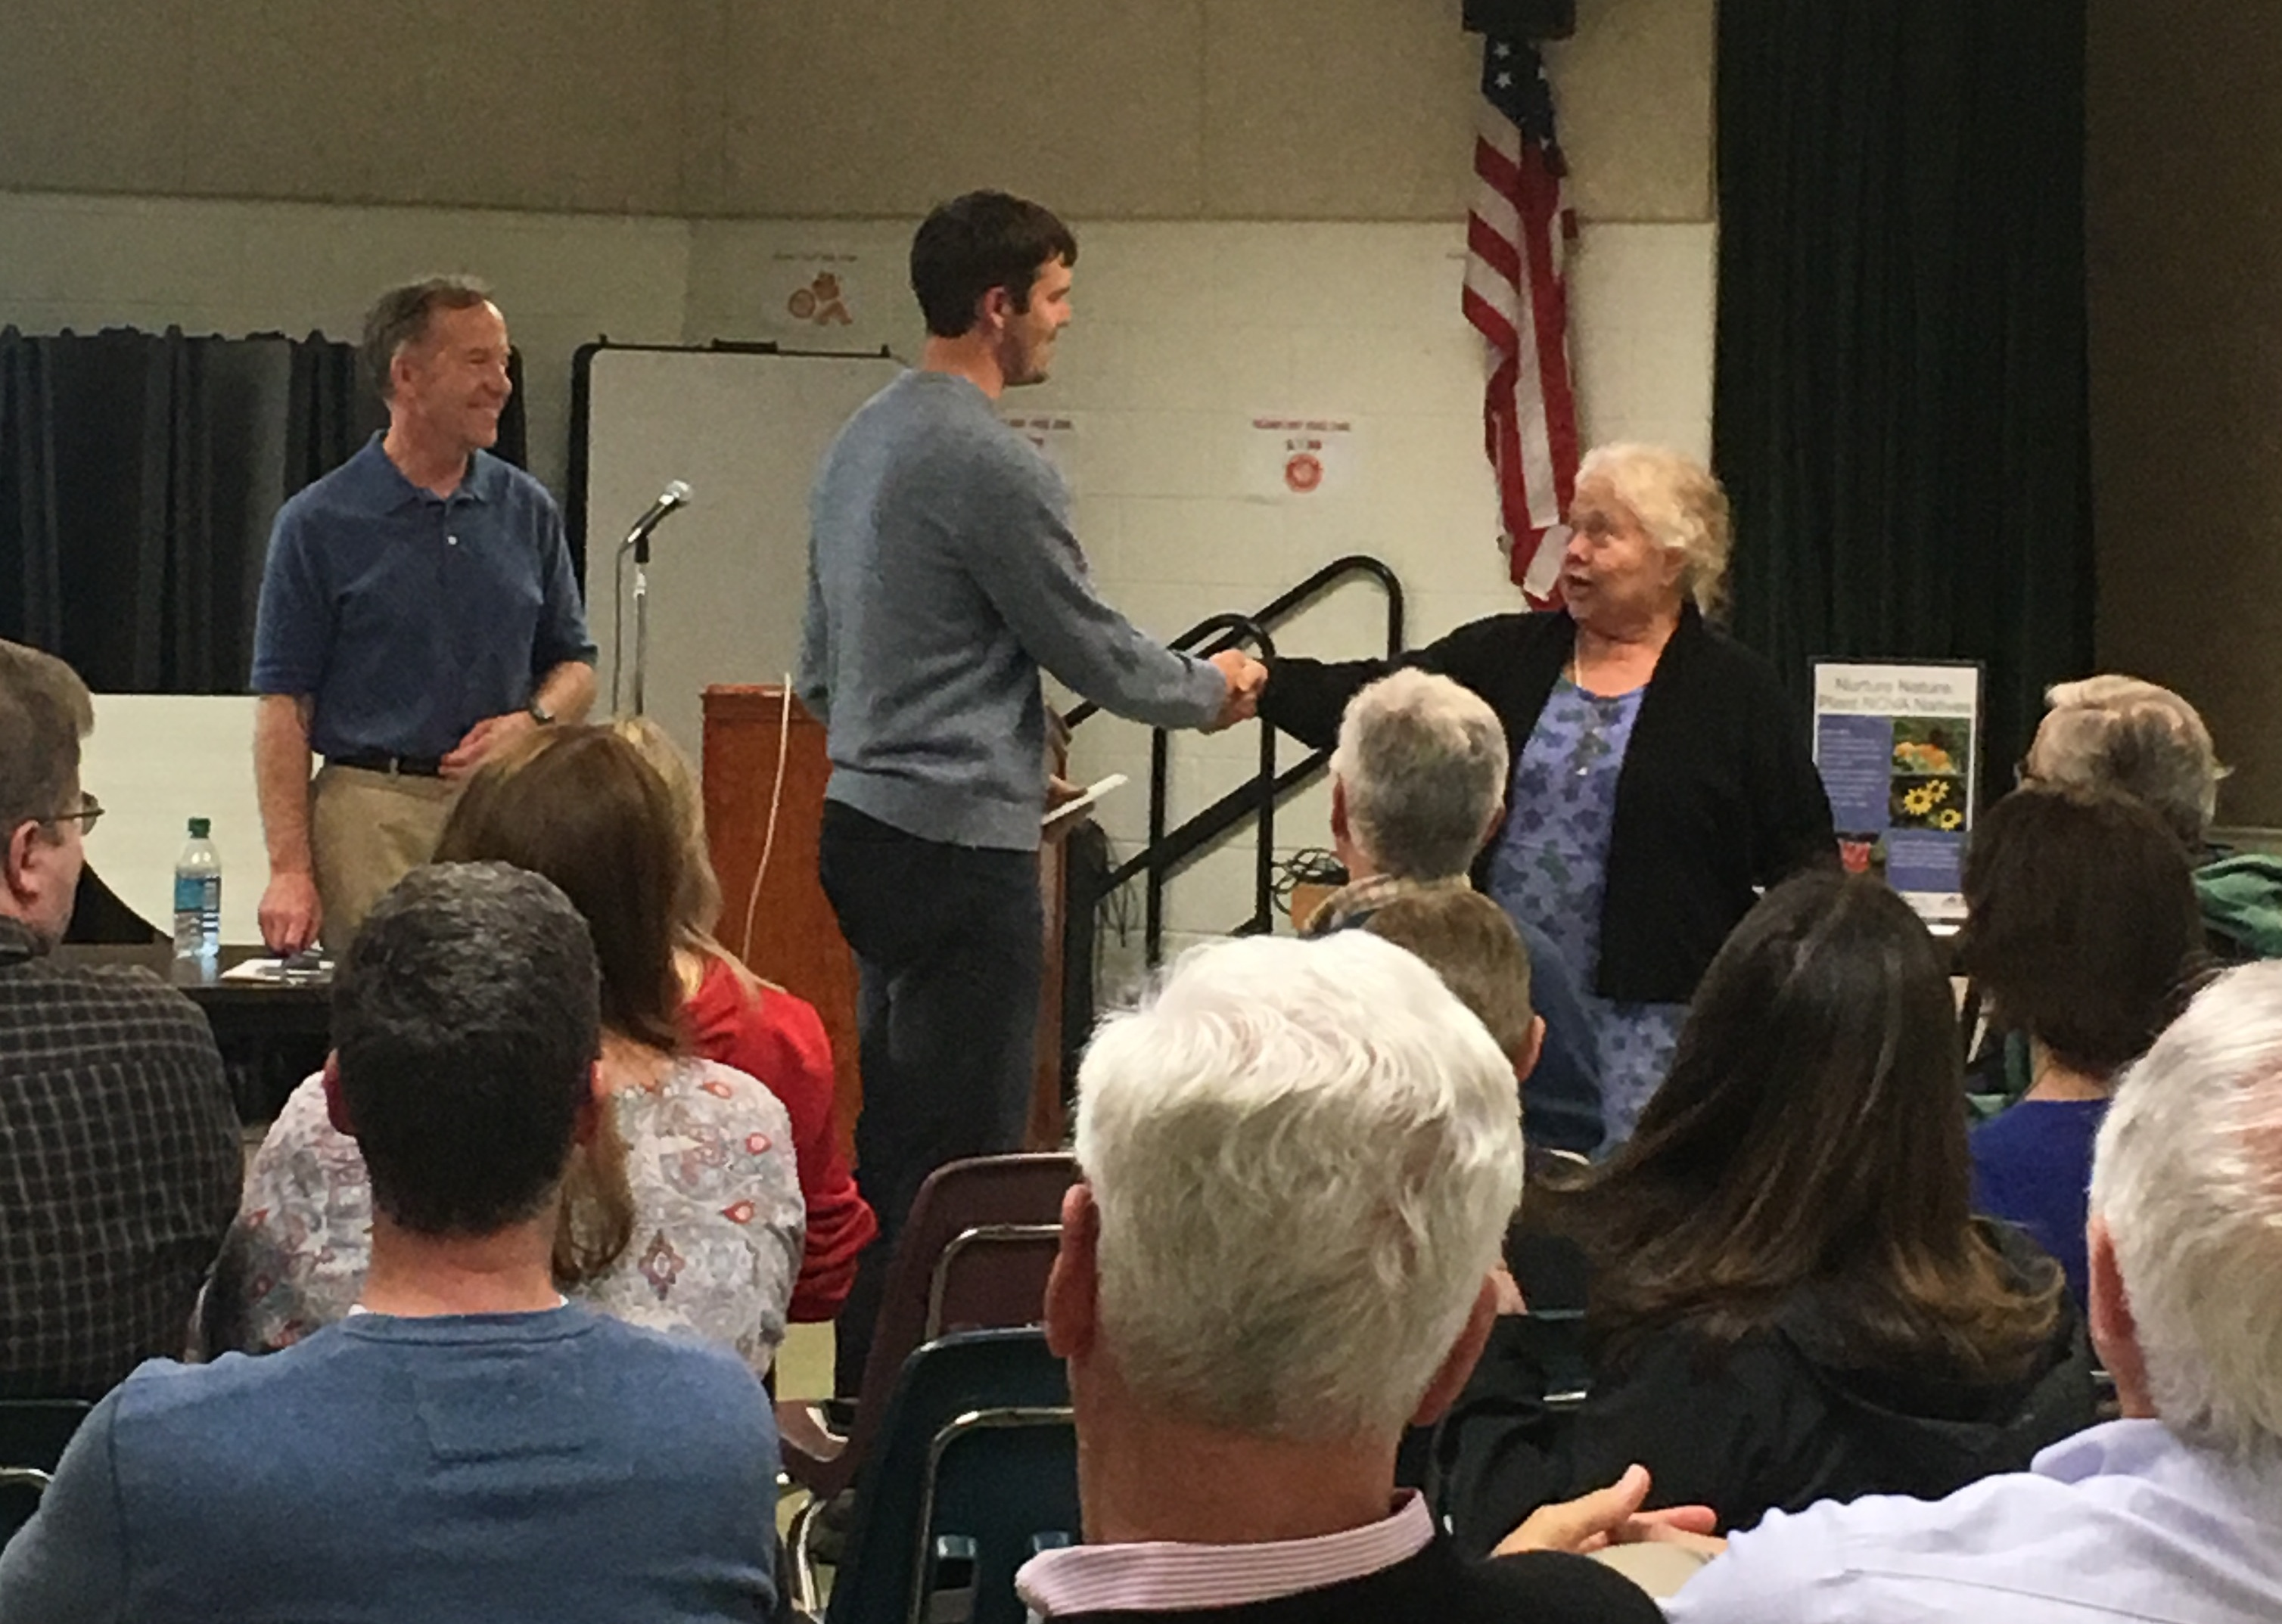 McLean Hamlet garden club President Patricia Frye presents a prize to resident Clay Winters for yard